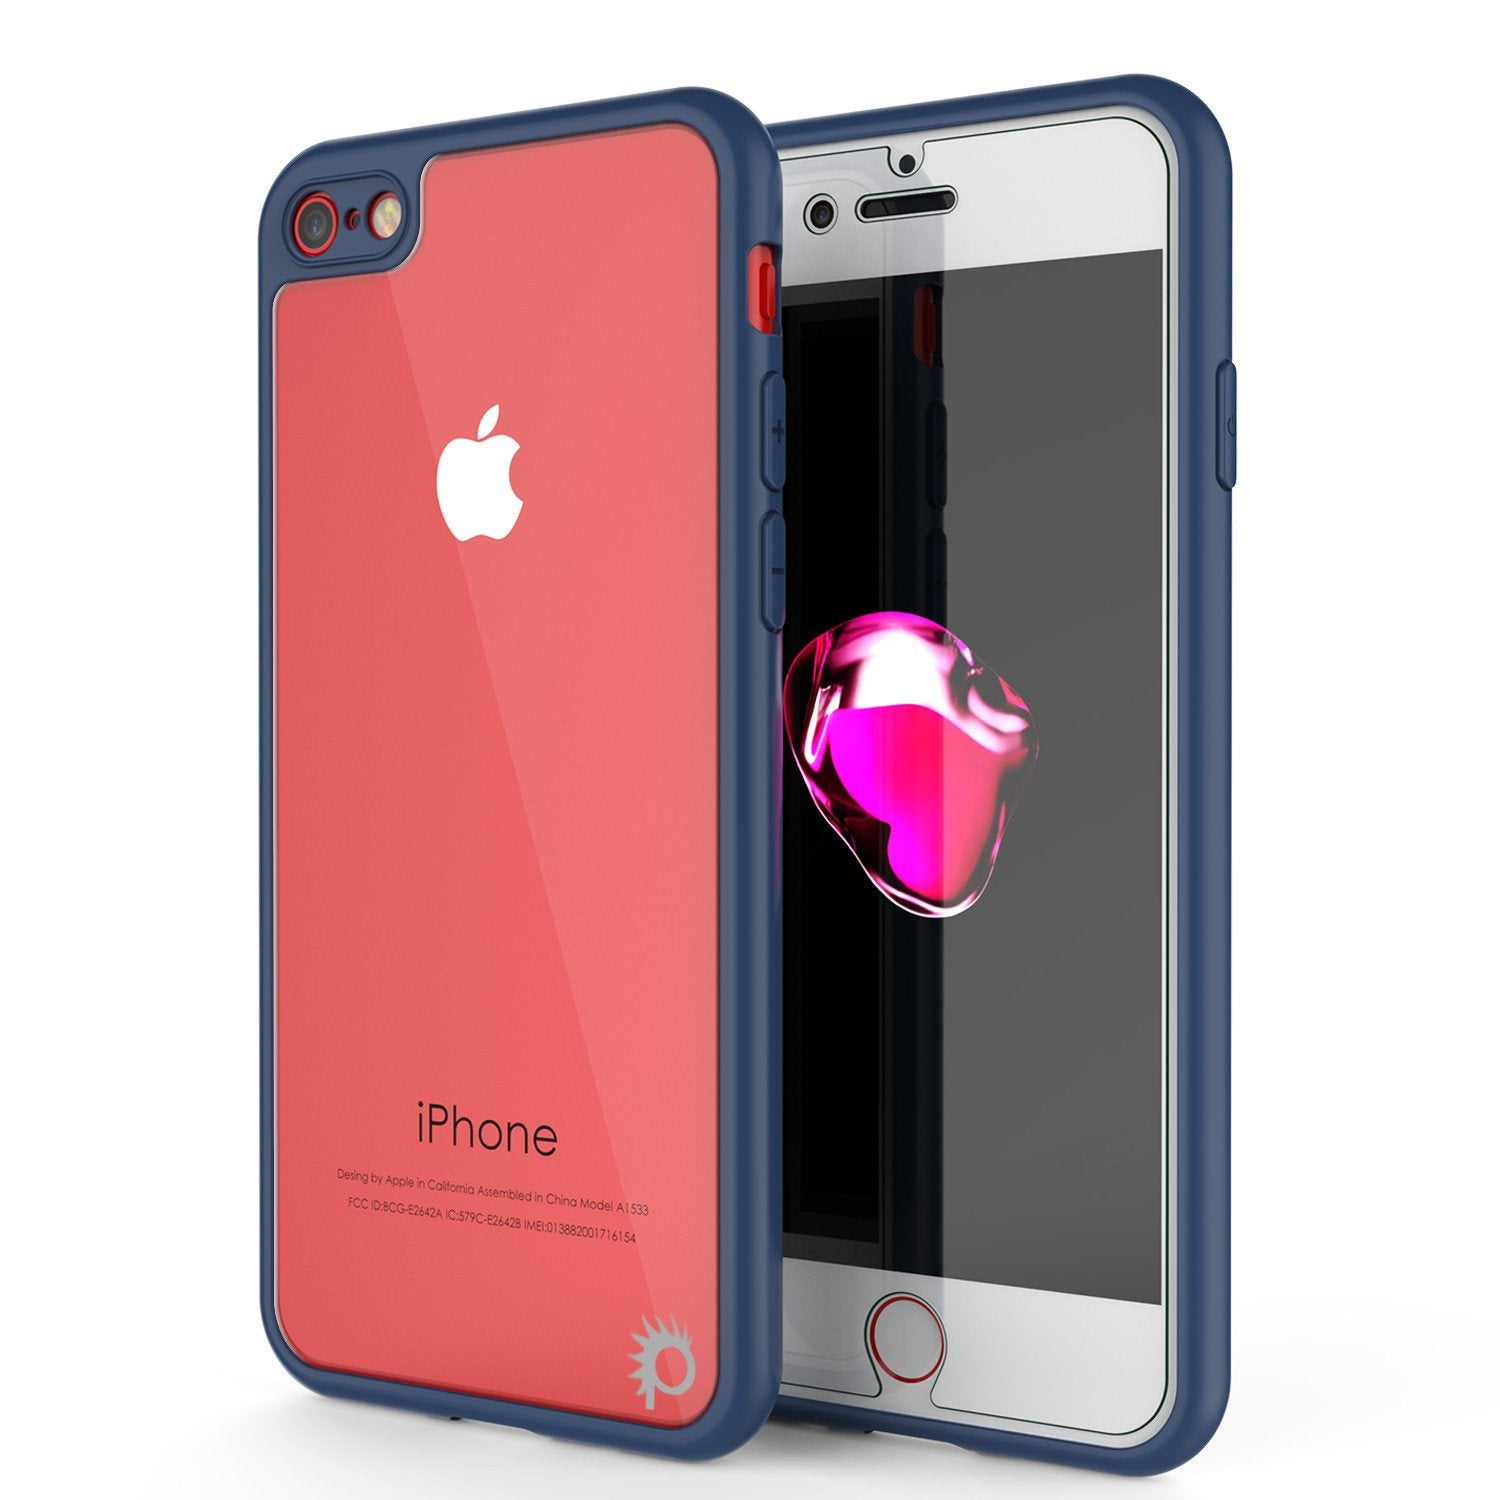 iPhone 7 Case, Punkcase [MASK Series] [NAVY] Full Body Hybrid Dual Layer TPU Cover [Clear Back] [Non Slip] [Ultra Thin Fit] W/ protective Tempered Glass Screen Protector for Apple iPhone 7S